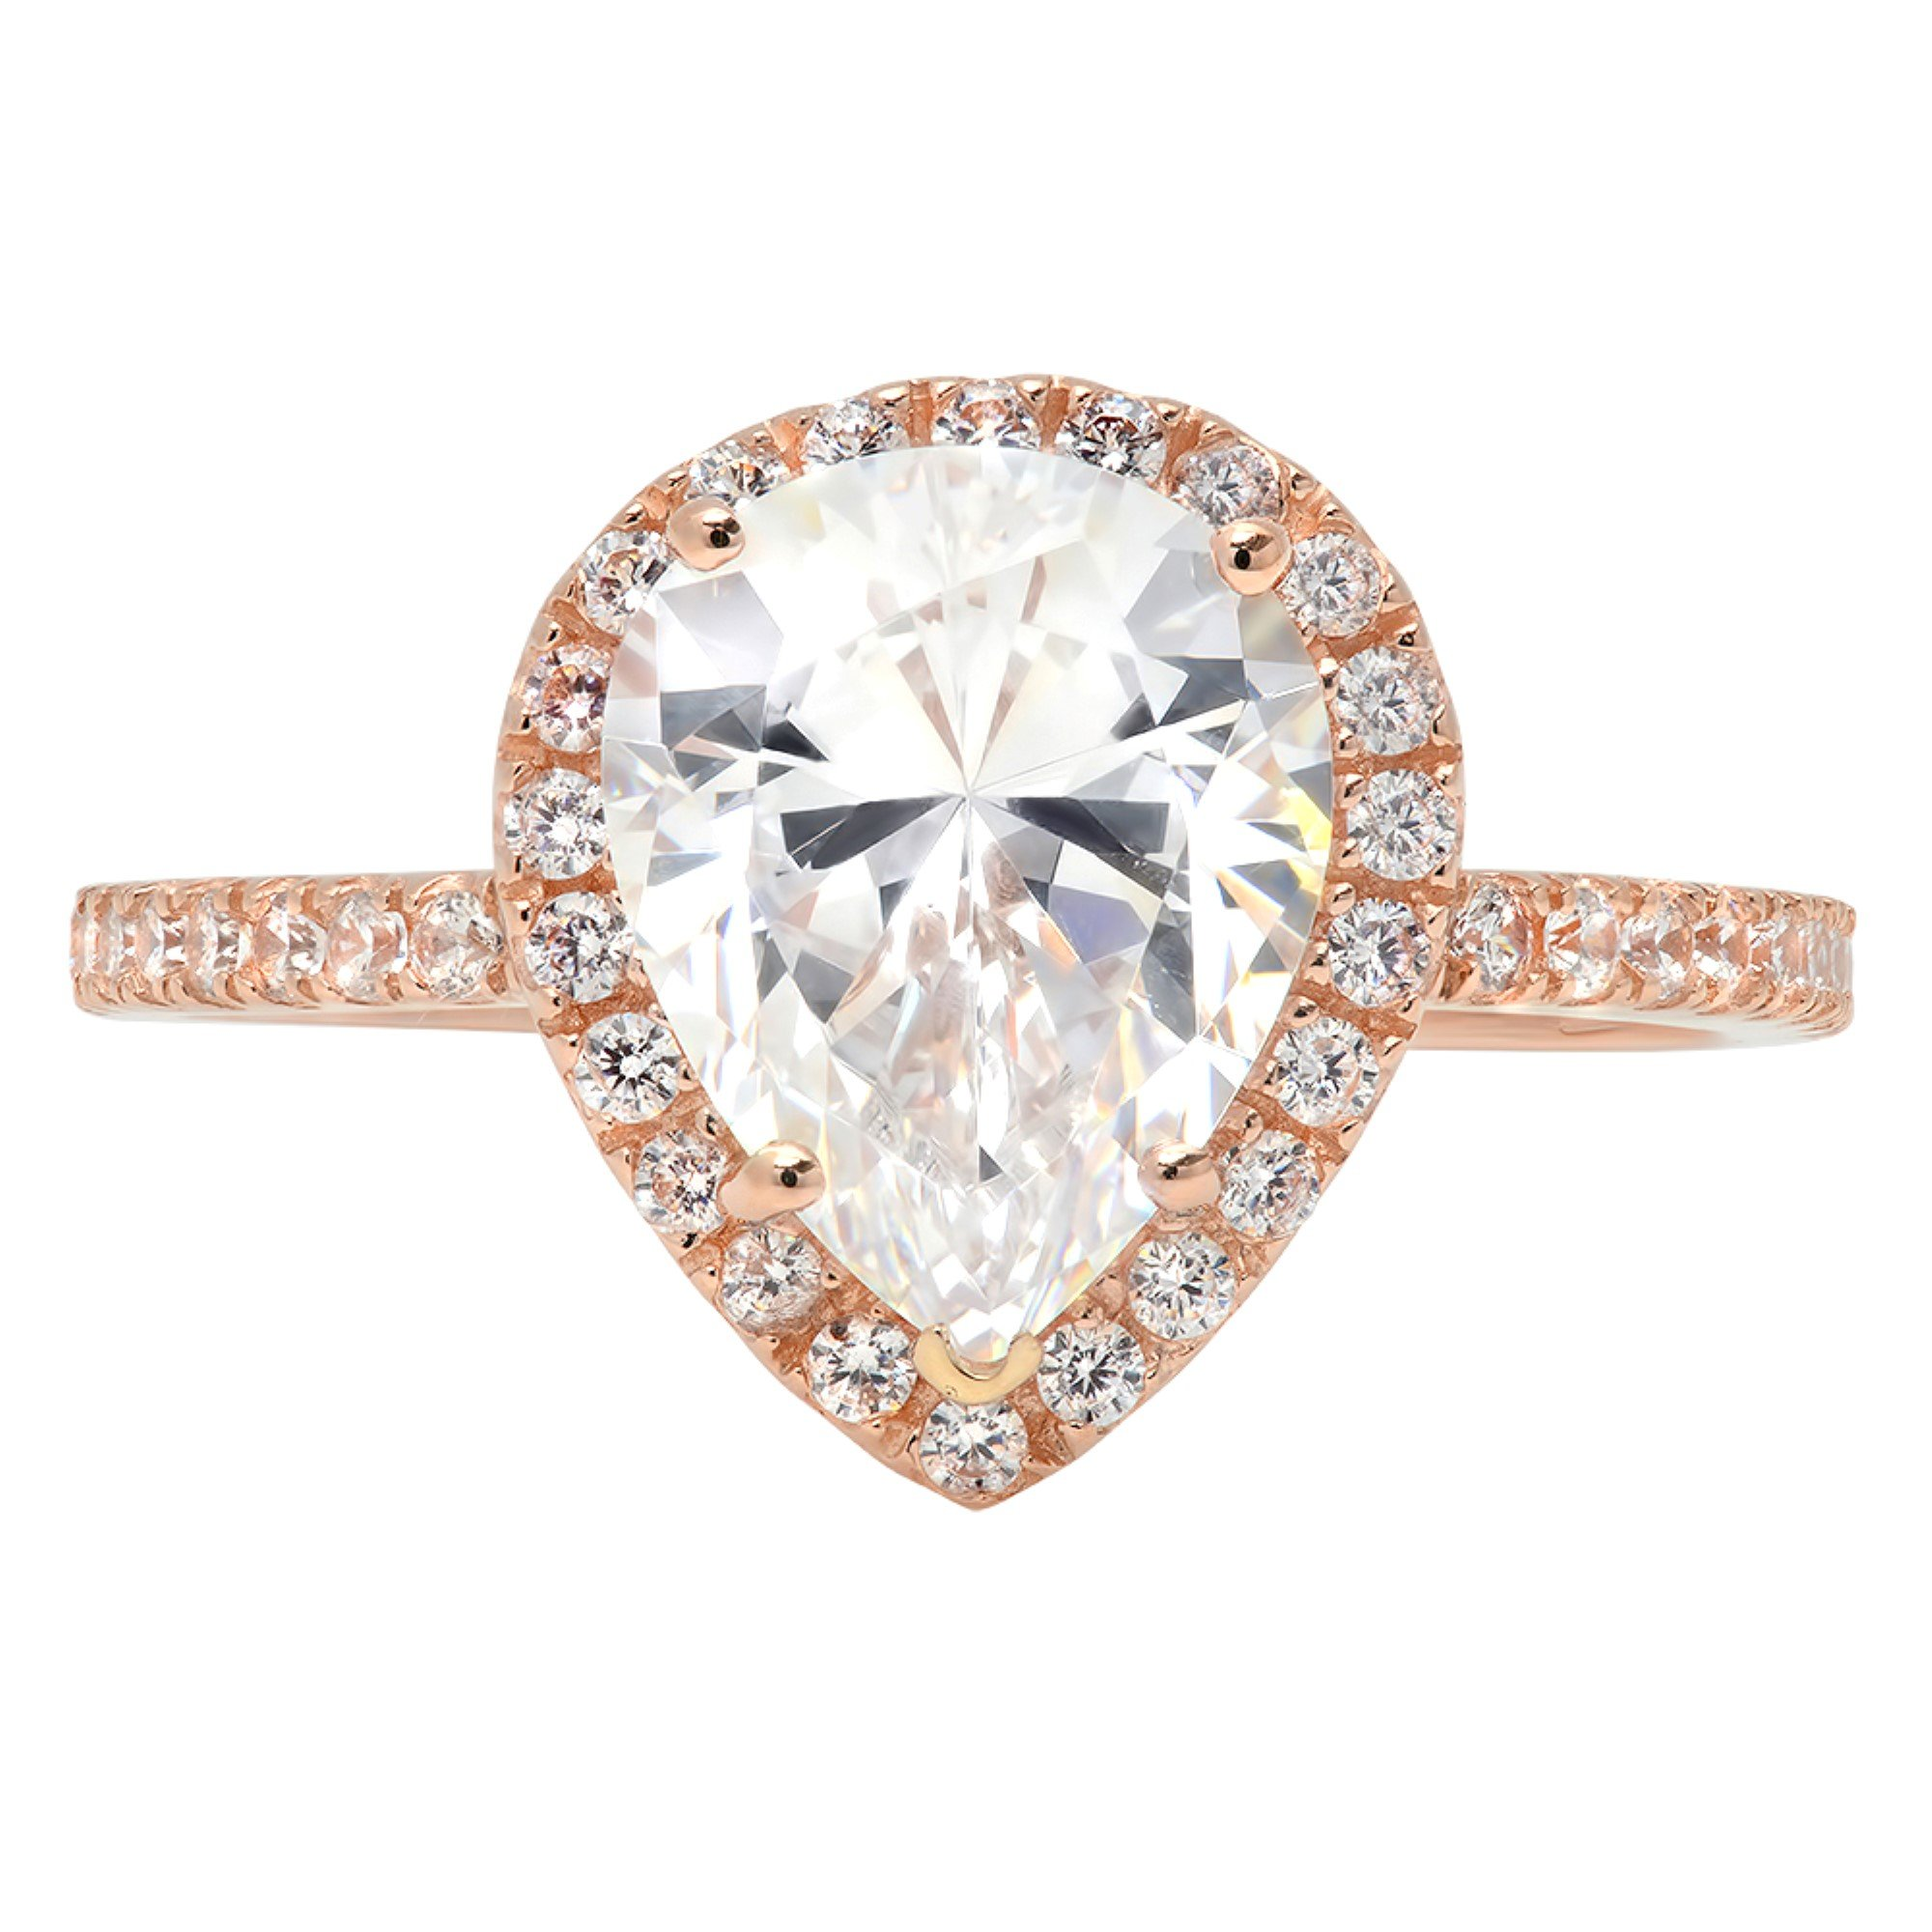 2.65ct Brilliant Pear Cut Halo Wedding Anniversary Engagement Promise Statement Bridal Ring 14k Rose Gold, 7